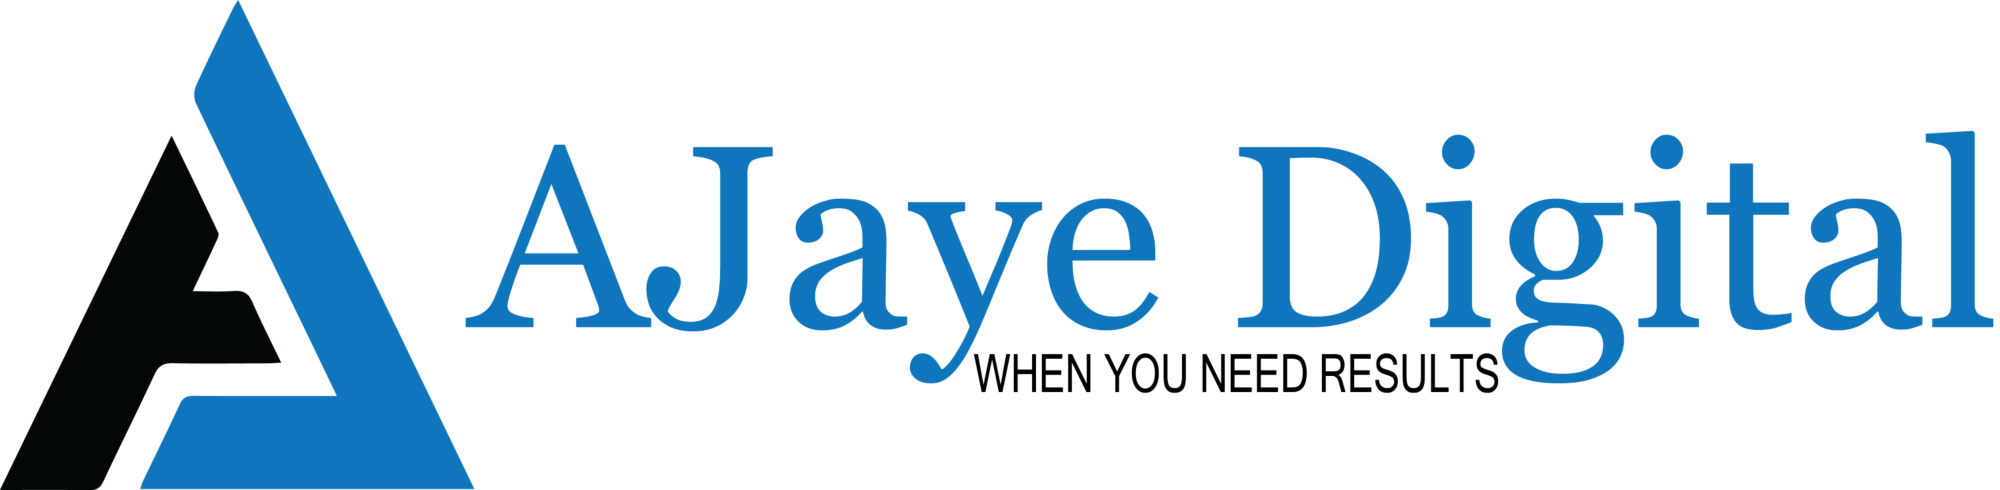 Ajaye Digital Marketing Logo